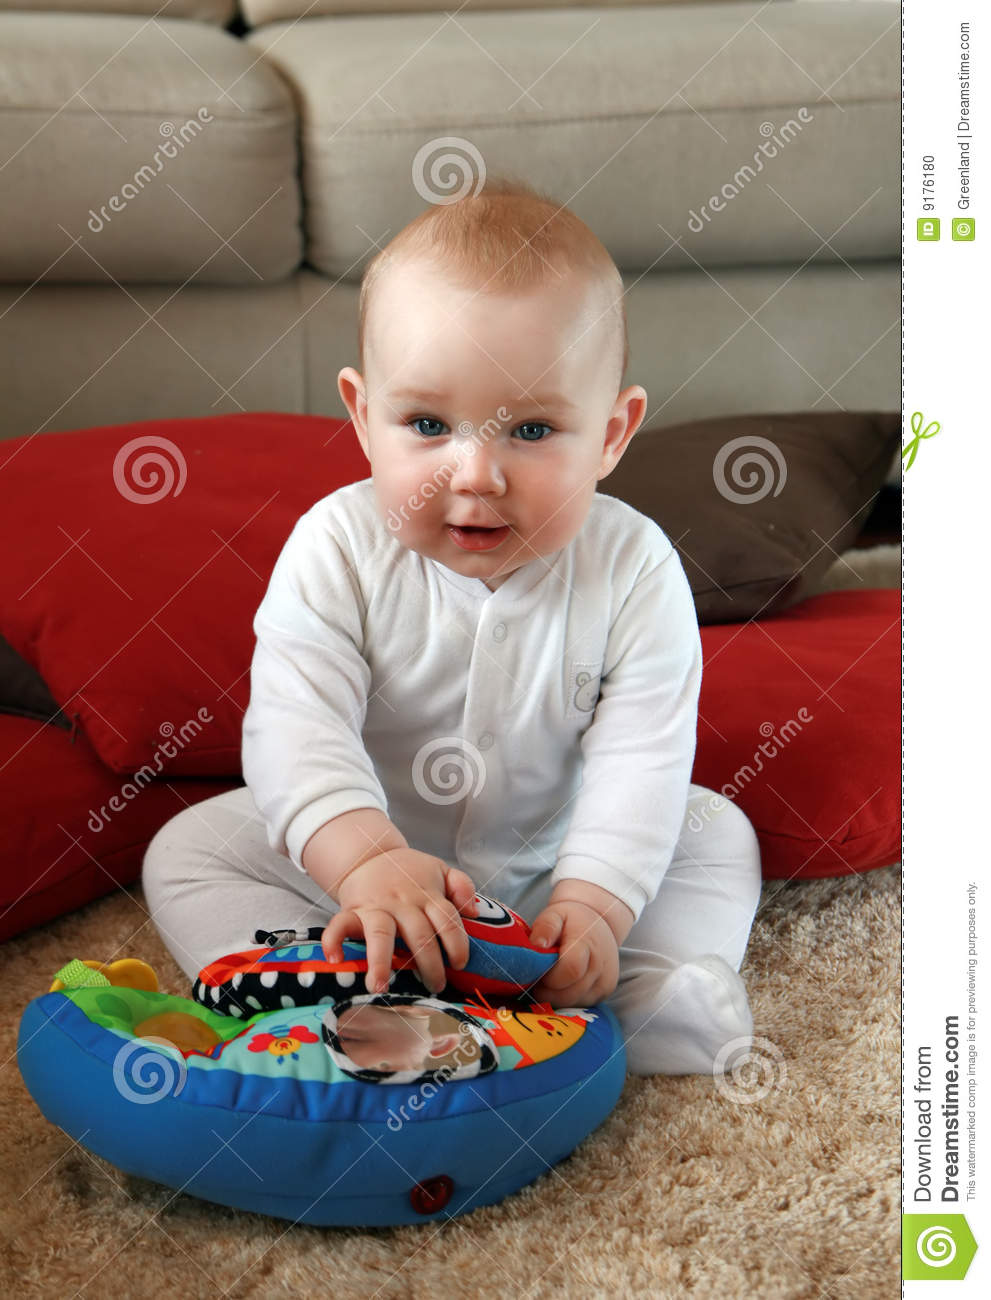 Boy Toys Baby : Baby boy with his first toys stock photo image